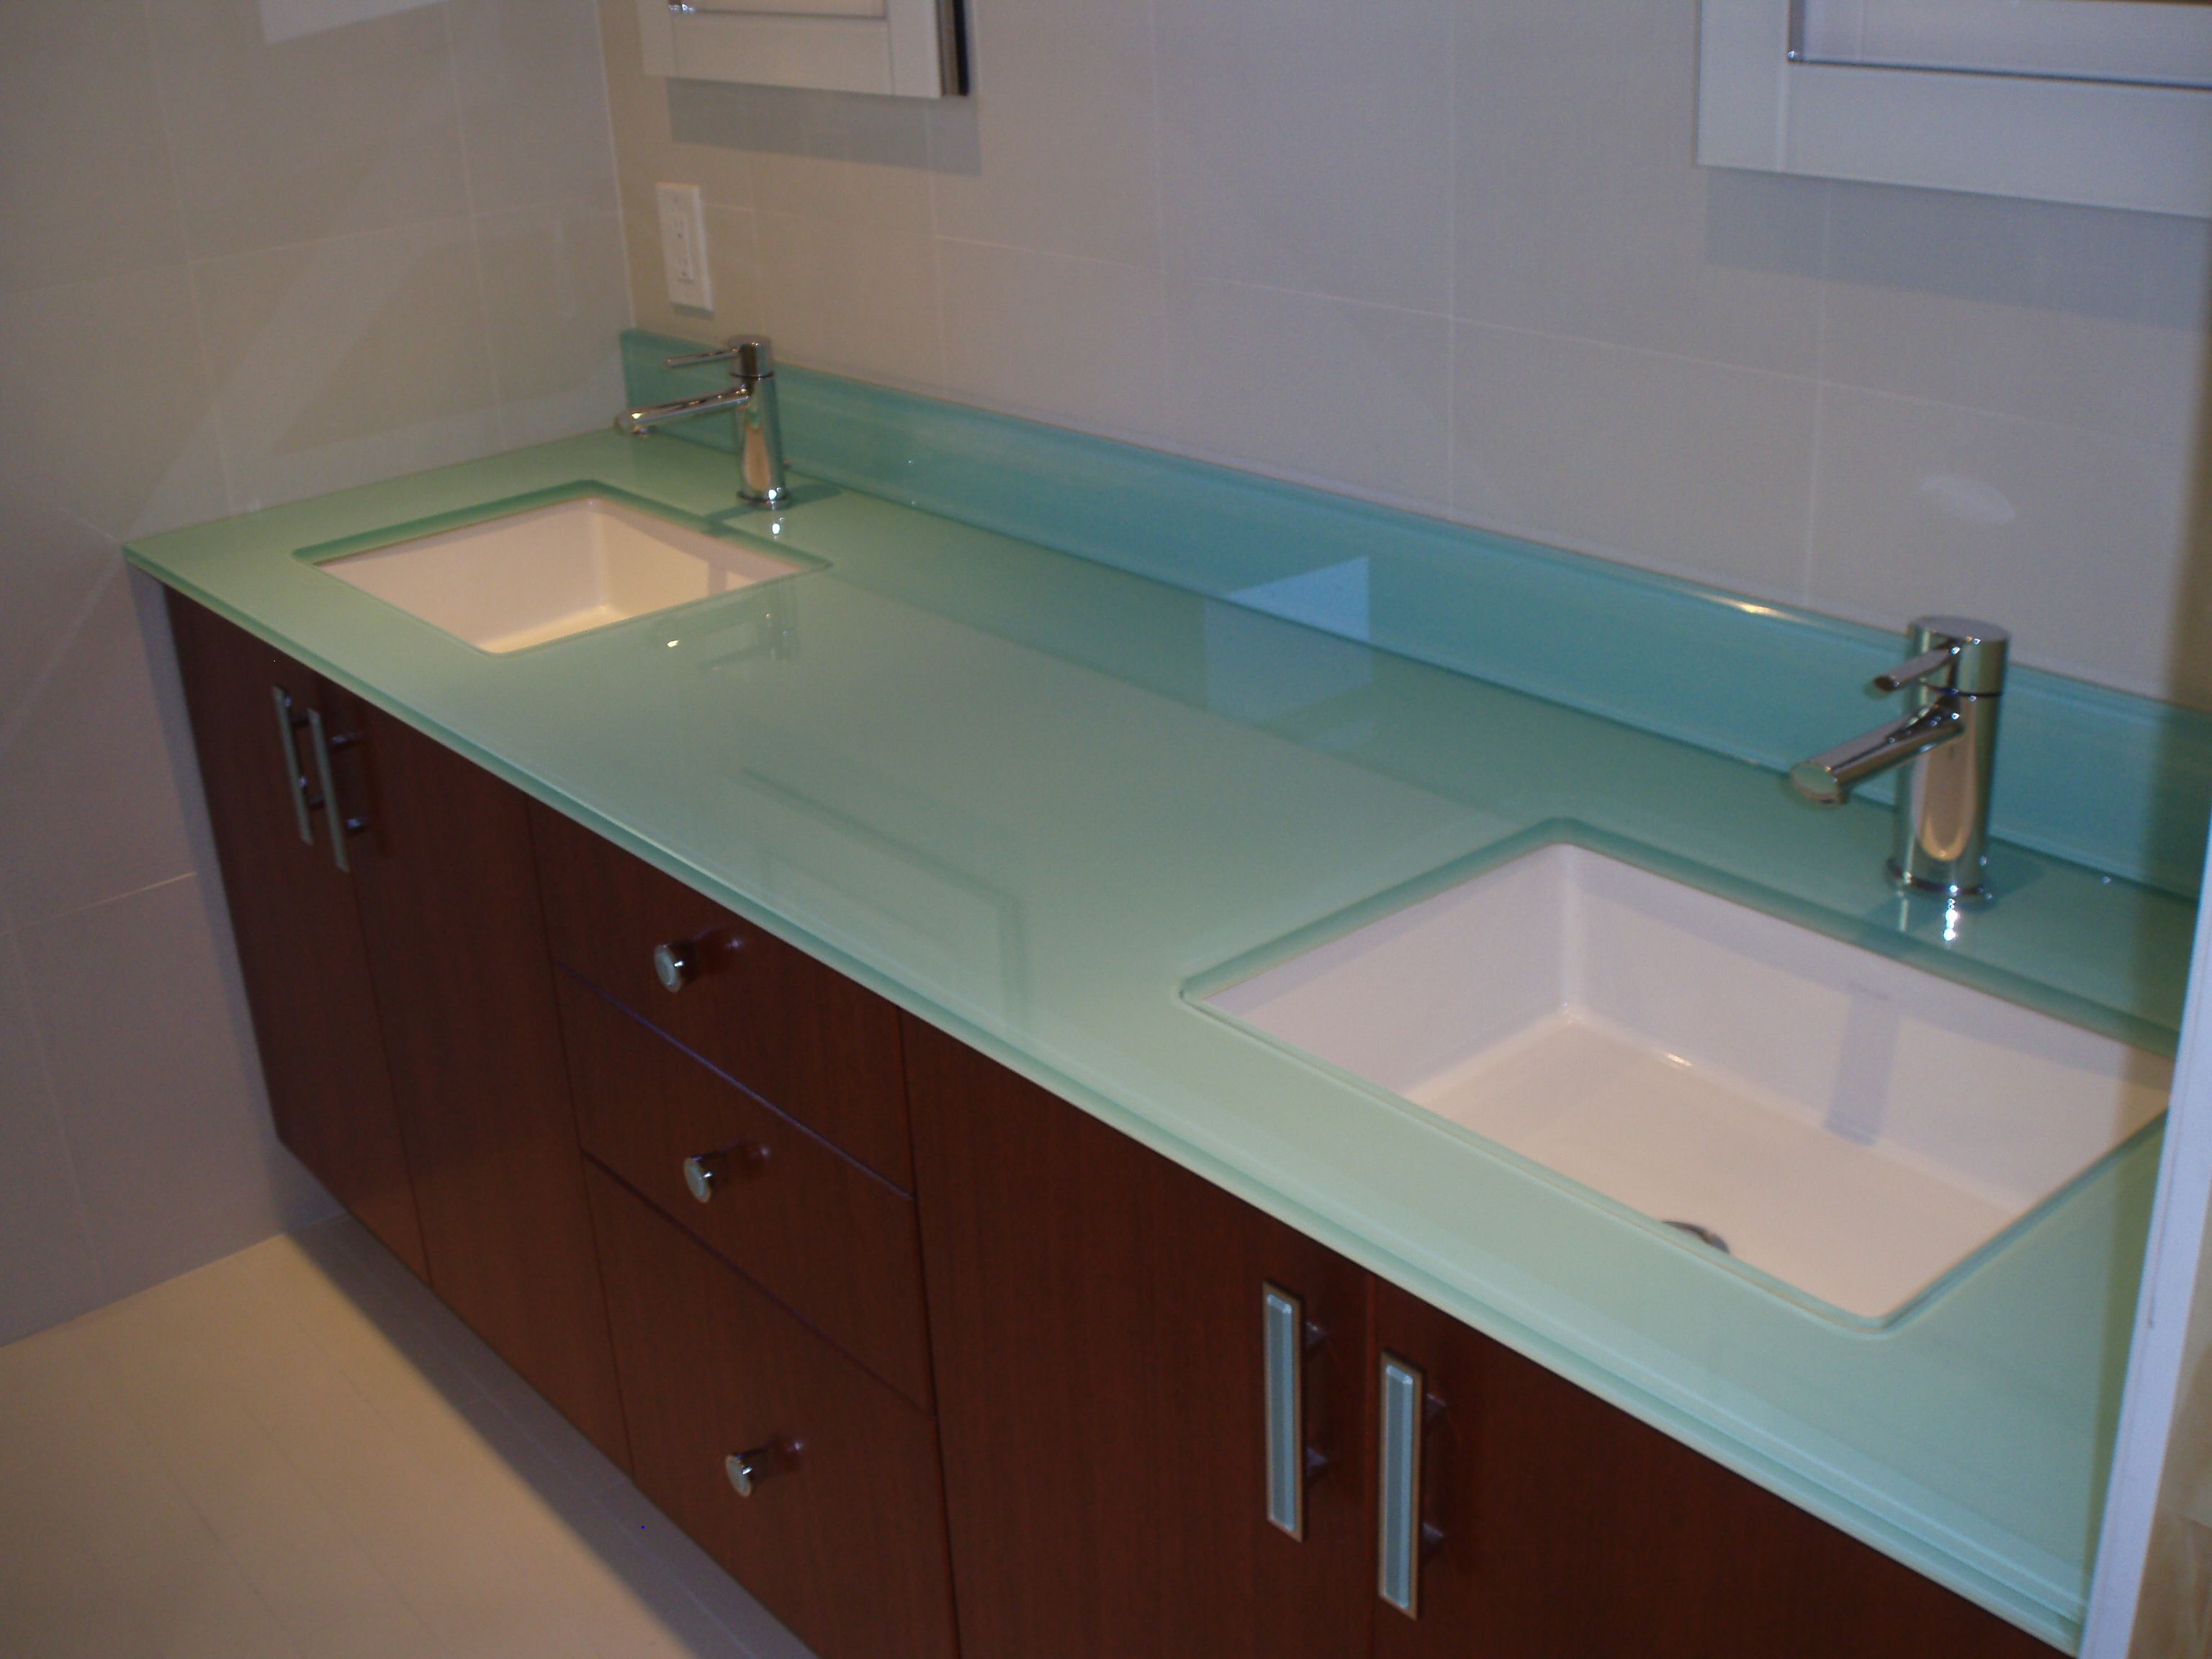 Bon Back Painted Glass Bathroom Countertop With Two White Undermount Sinks.  #undermountsink #nkba